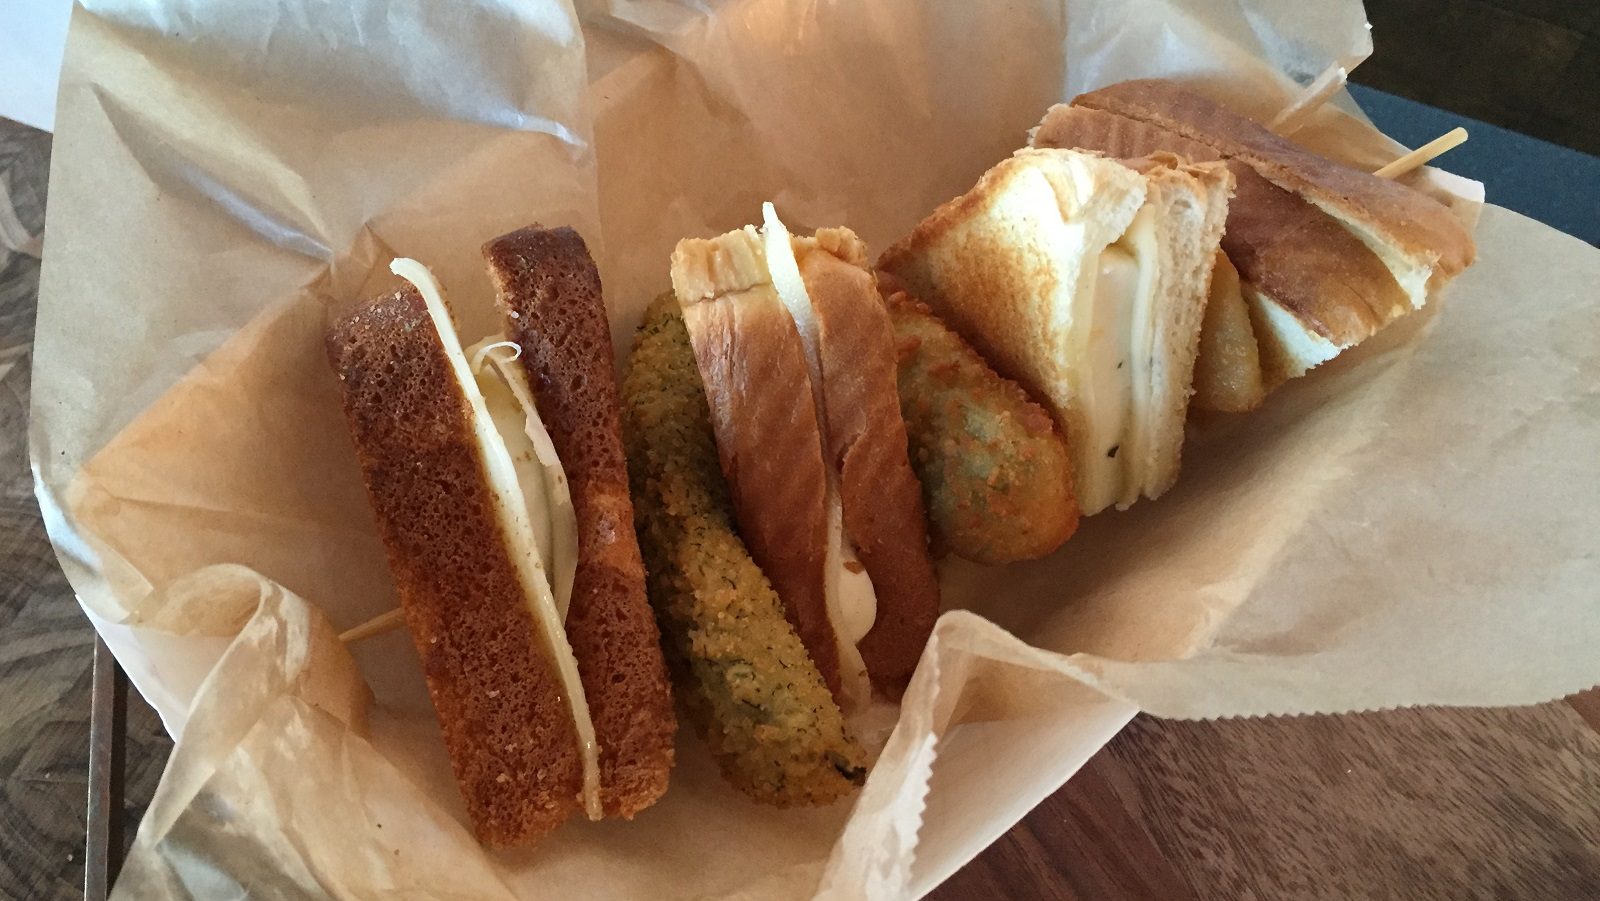 The Grilled Cheese Kabob comes with a fried pickle, onion ring and jalapeno popper. (Aaron Besecker/Buffalo News)